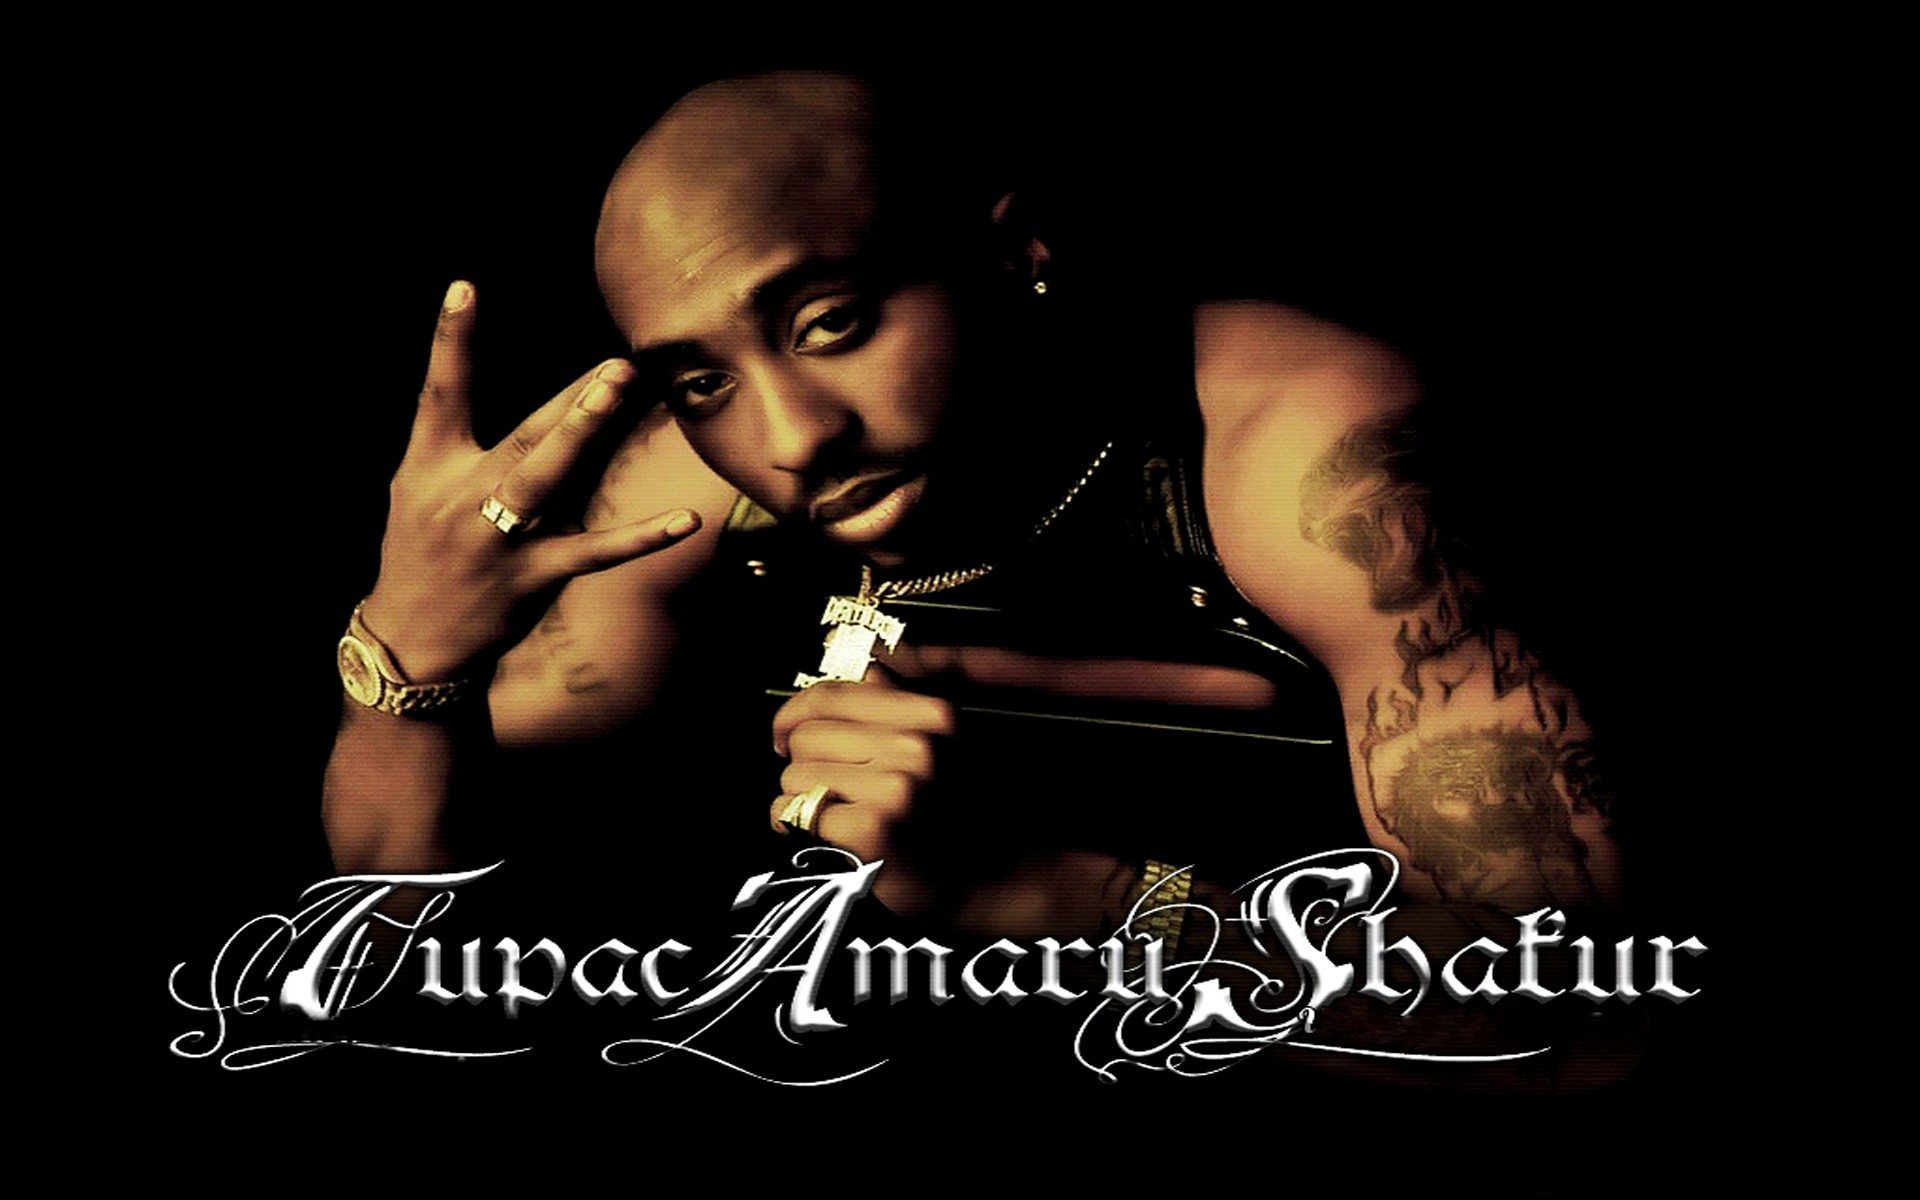 Tupac rap gangsta g wallpaper 1920x1200 45913 WallpaperUP 1920x1200